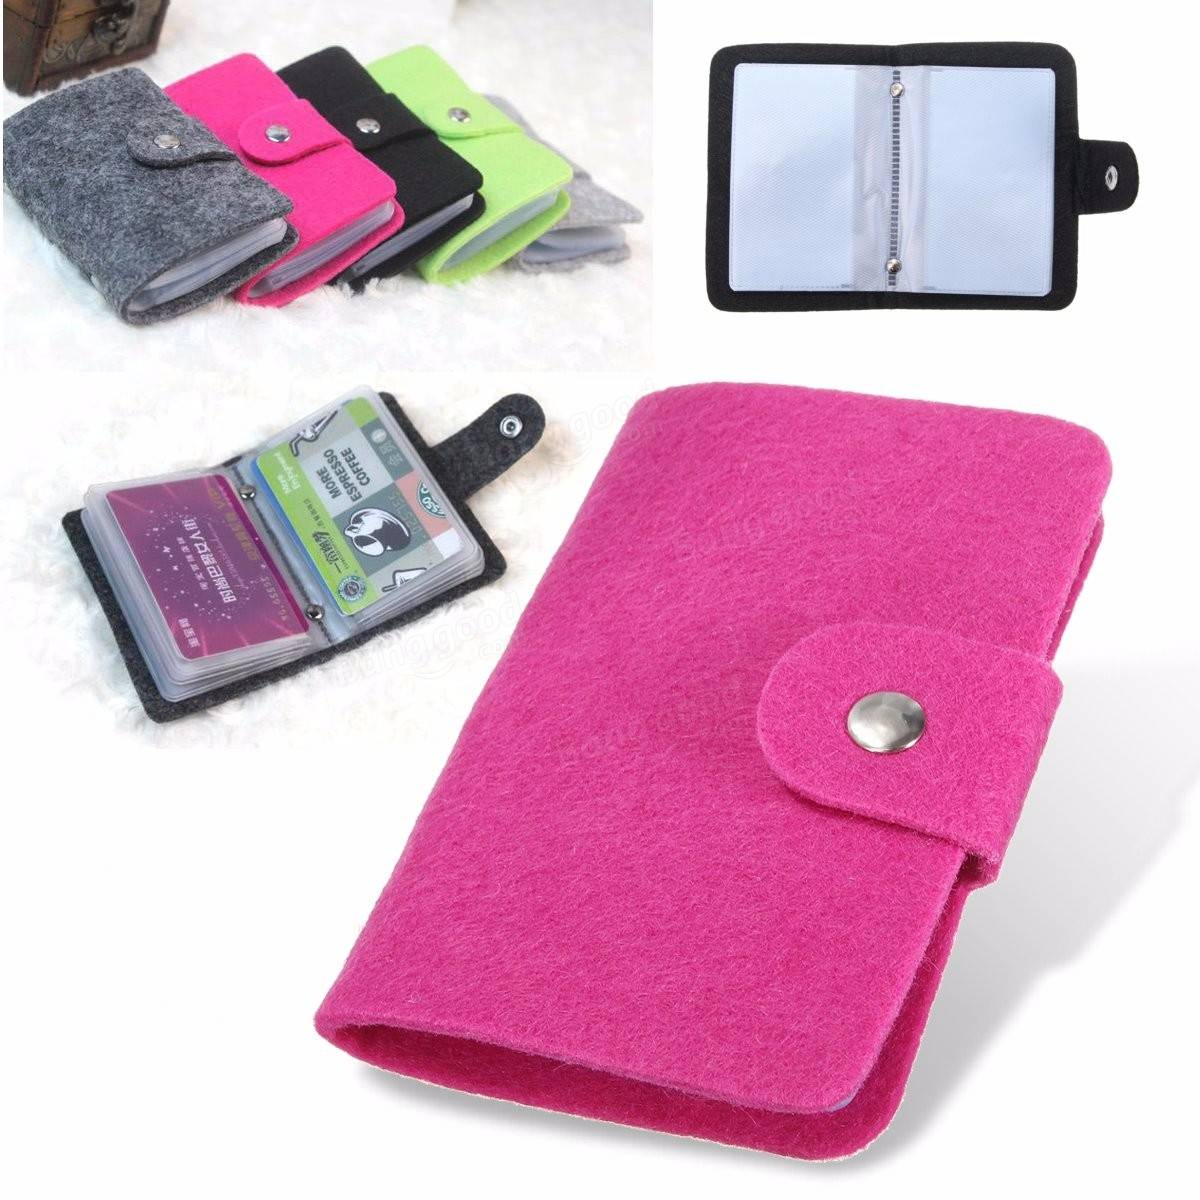 Motorcycle gloves with id pocket - Vintage Women Men Pouch Id Credit Card Wallet Cash Holder Organizer Box Pocket Cover Case